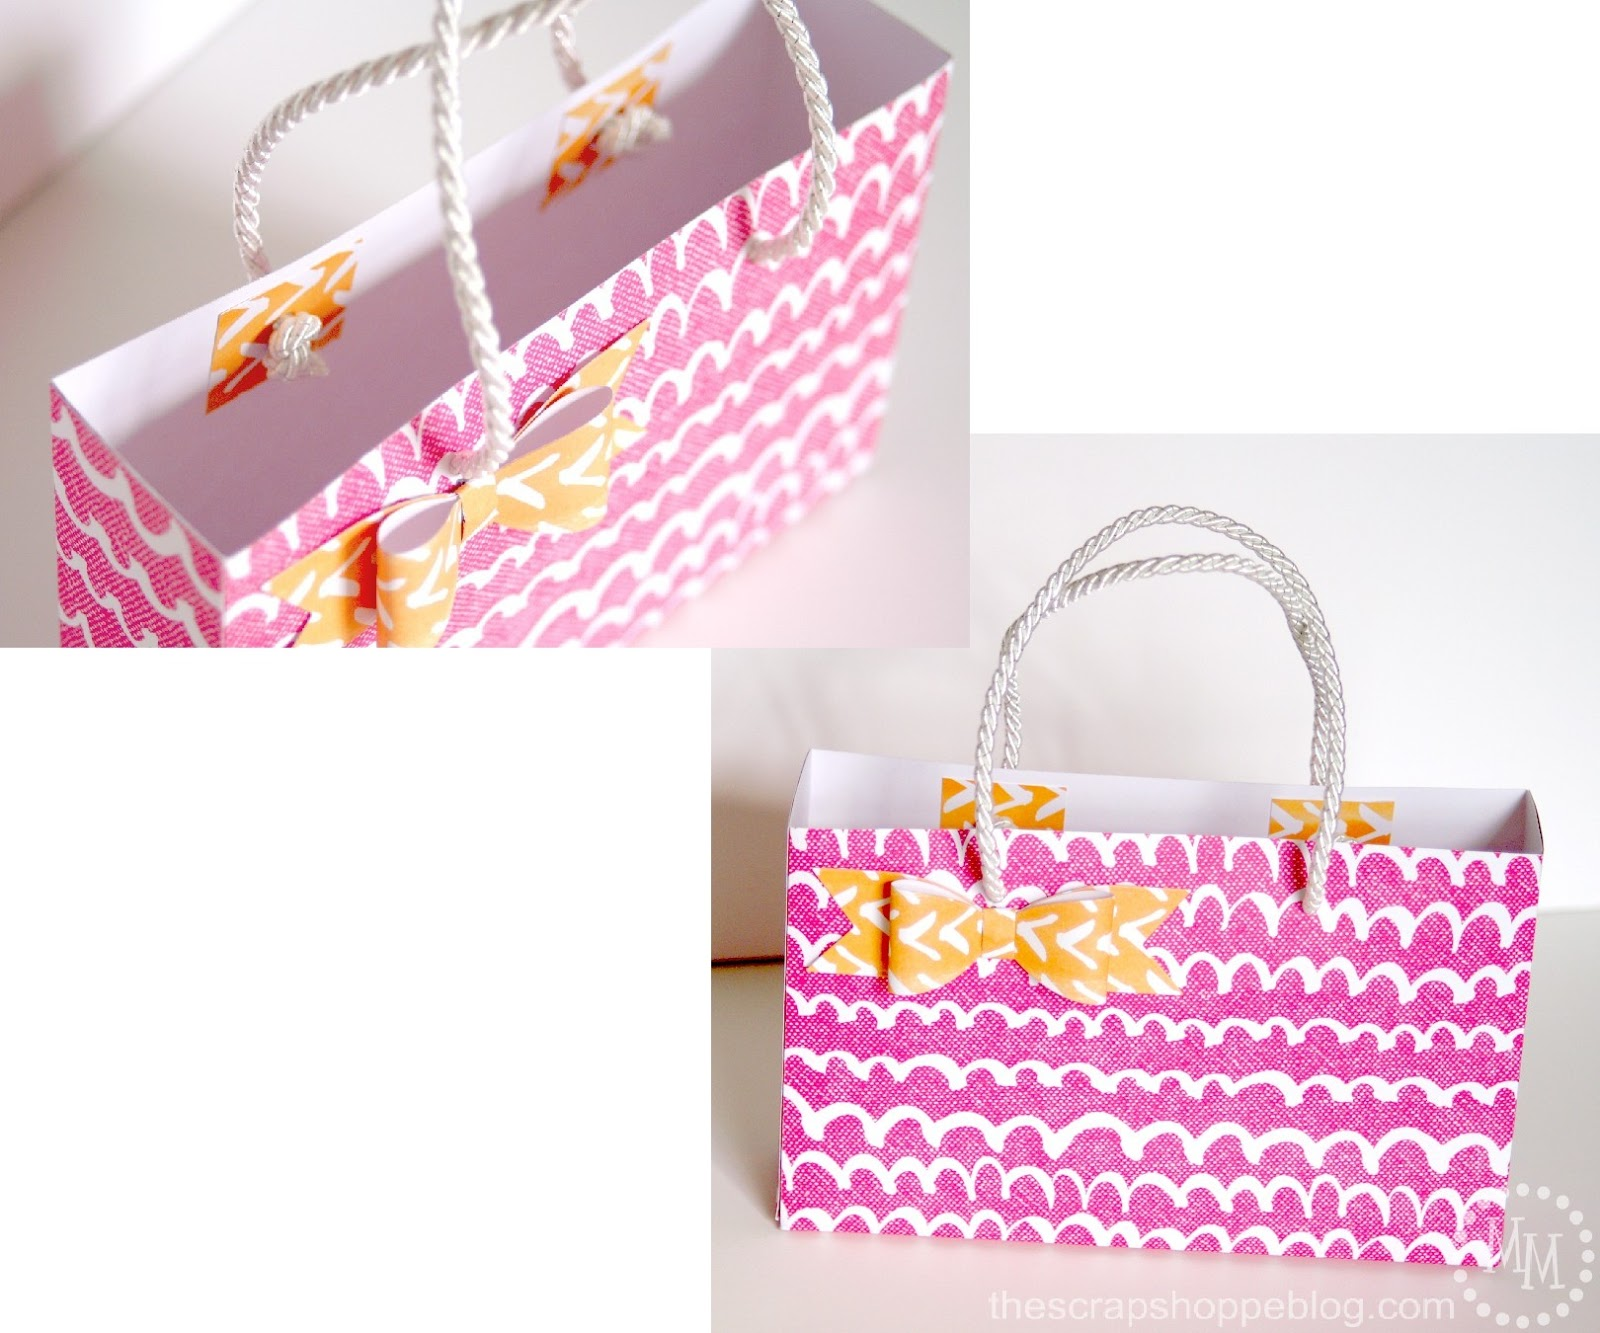 Scrapbook paper case -  Twine Or In This Case Roped Ribbon To Reinforce The Handles So They Do Not Rip Through The Bag You Can Add Extra Squares Of Scrapbook Paper To